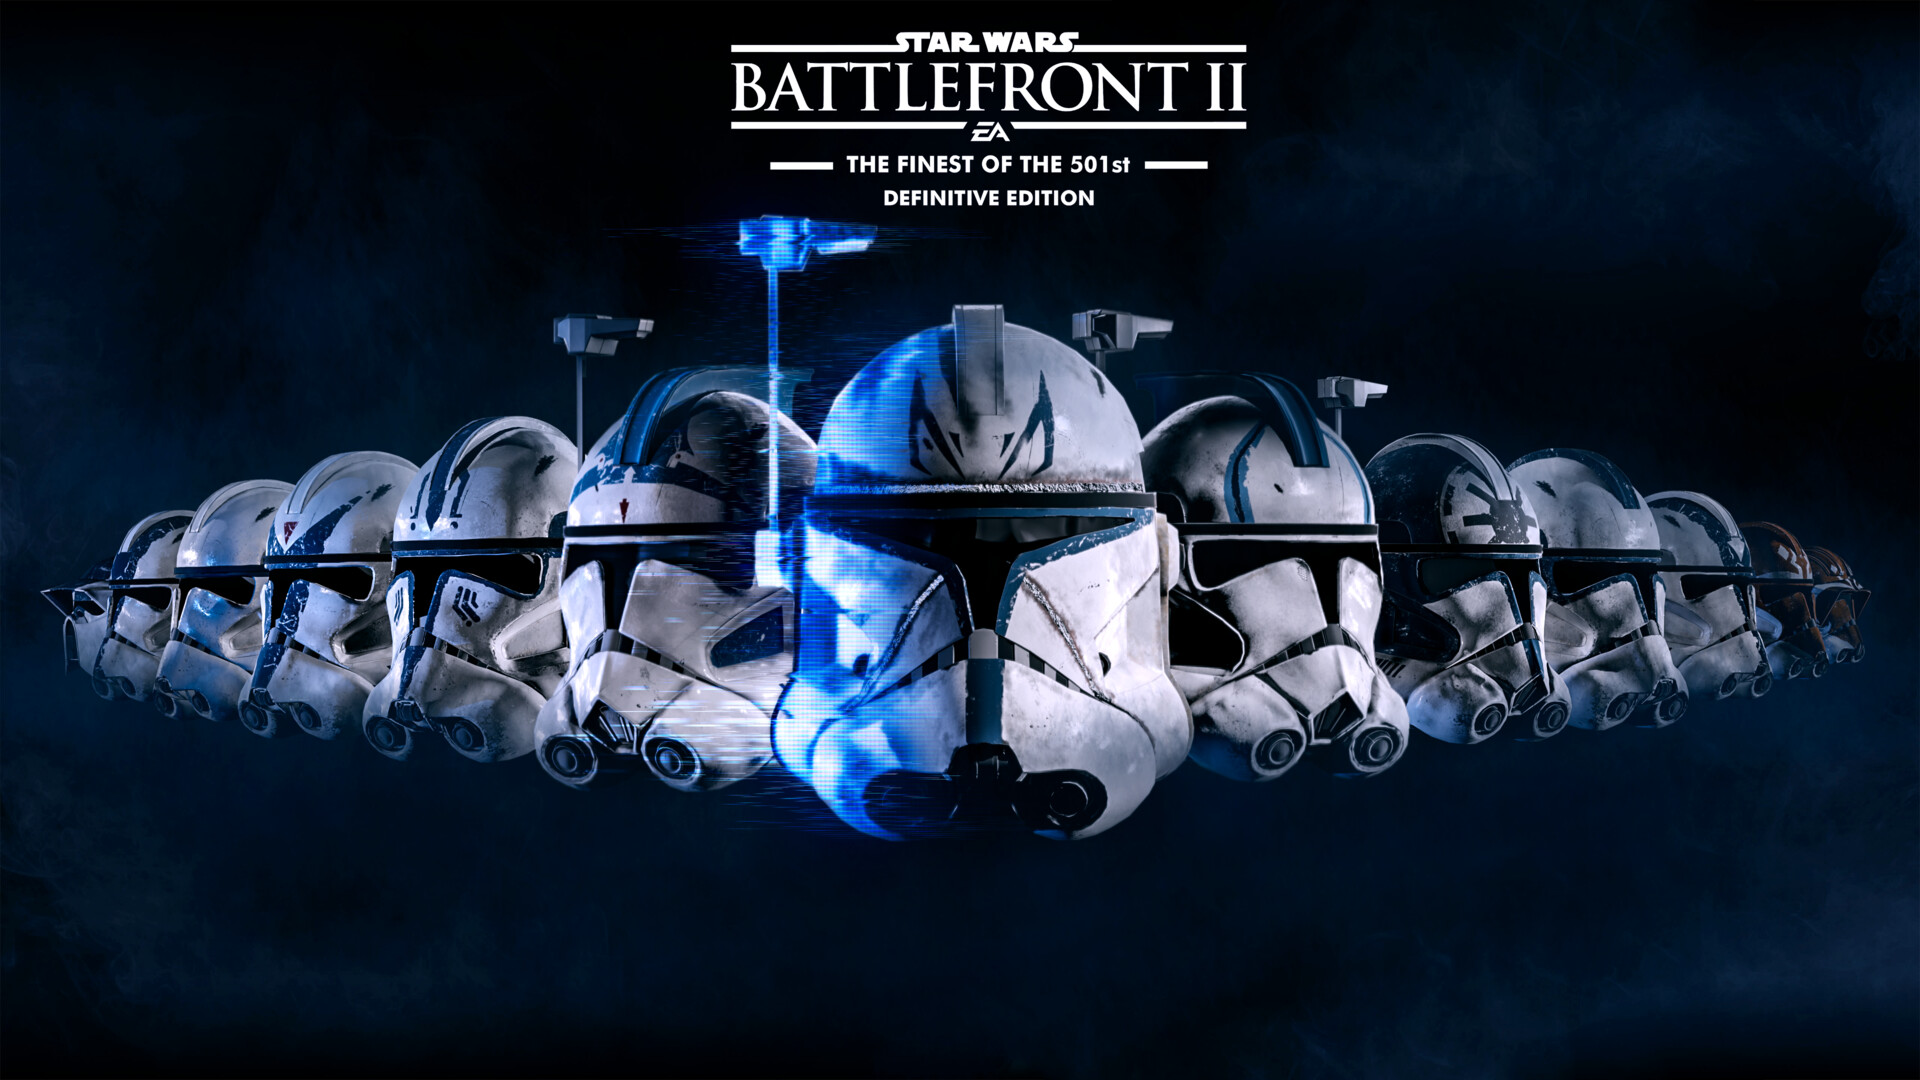 Artstation The Finest Of The 501st Definitive Edition Star Wars Battlefront 2 Mod Iosif Puia See more of the 501st legion on facebook. the finest of the 501st definitive